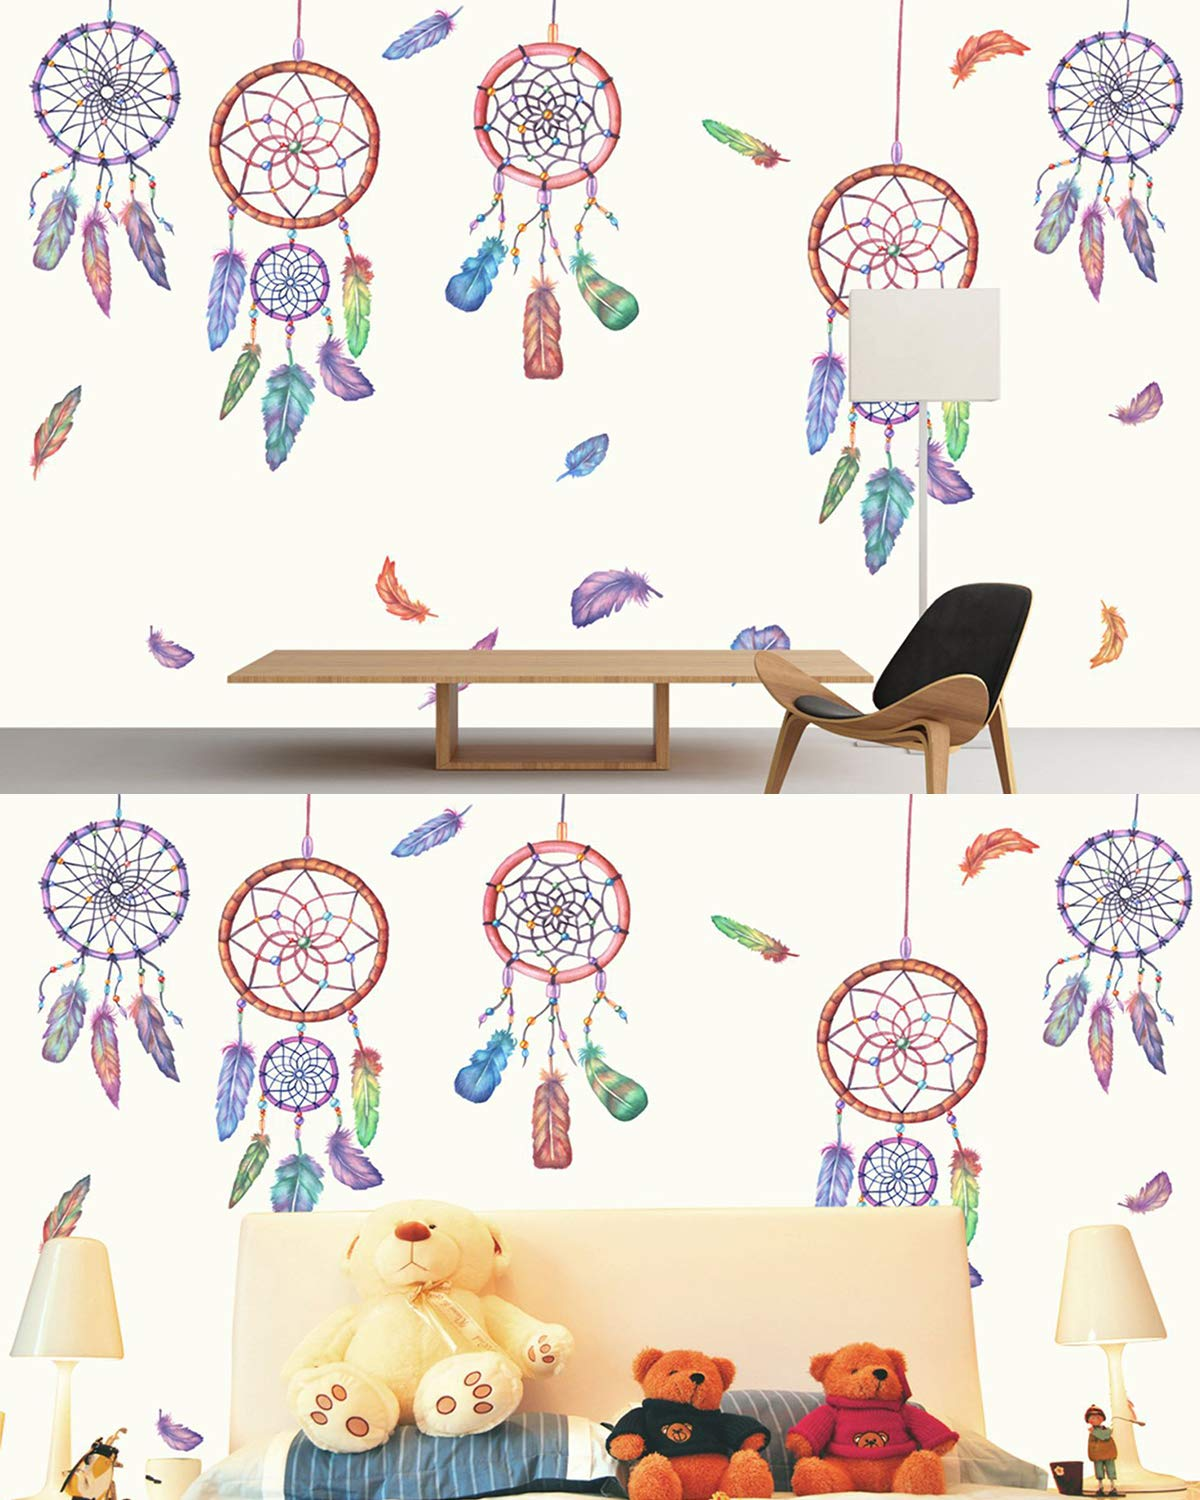 Living Room Butterfly Mural Wall Art for DIY Dorm Sunm boutique 3D Butterfly Wall Decals 94 Pcs Removable Butterfly Wall Sticker Decals Bedroom Decor